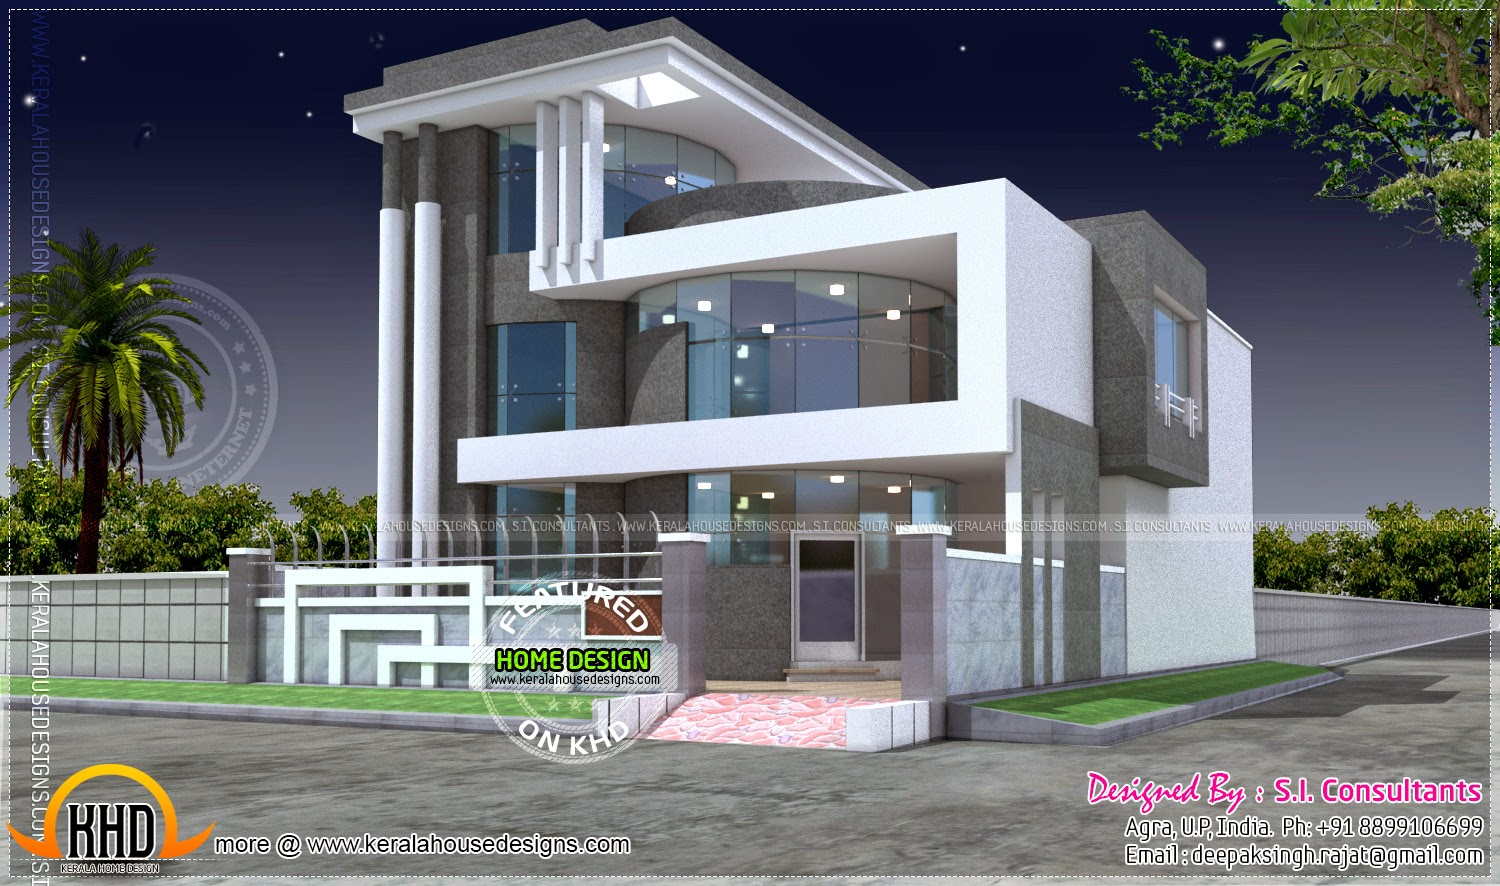 Unique luxury home design kerala home design and floor plans for Interesting home designs